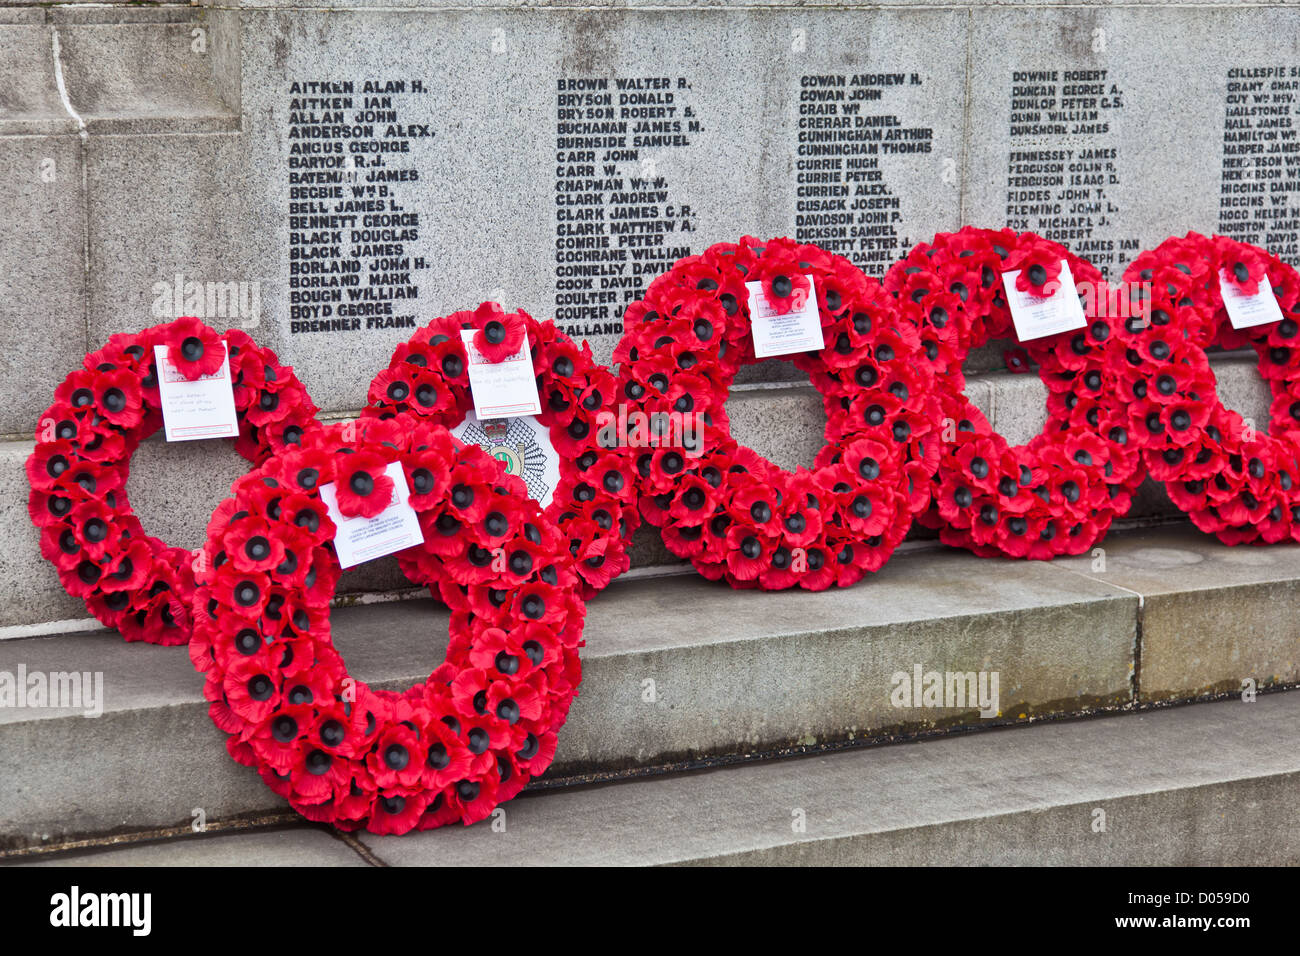 Poppy wreaths laid at the cenotaph in Centenary Park, Airdrie, North Ayrshire, Scotland, UK. Remembrance Sunday, - Stock Image